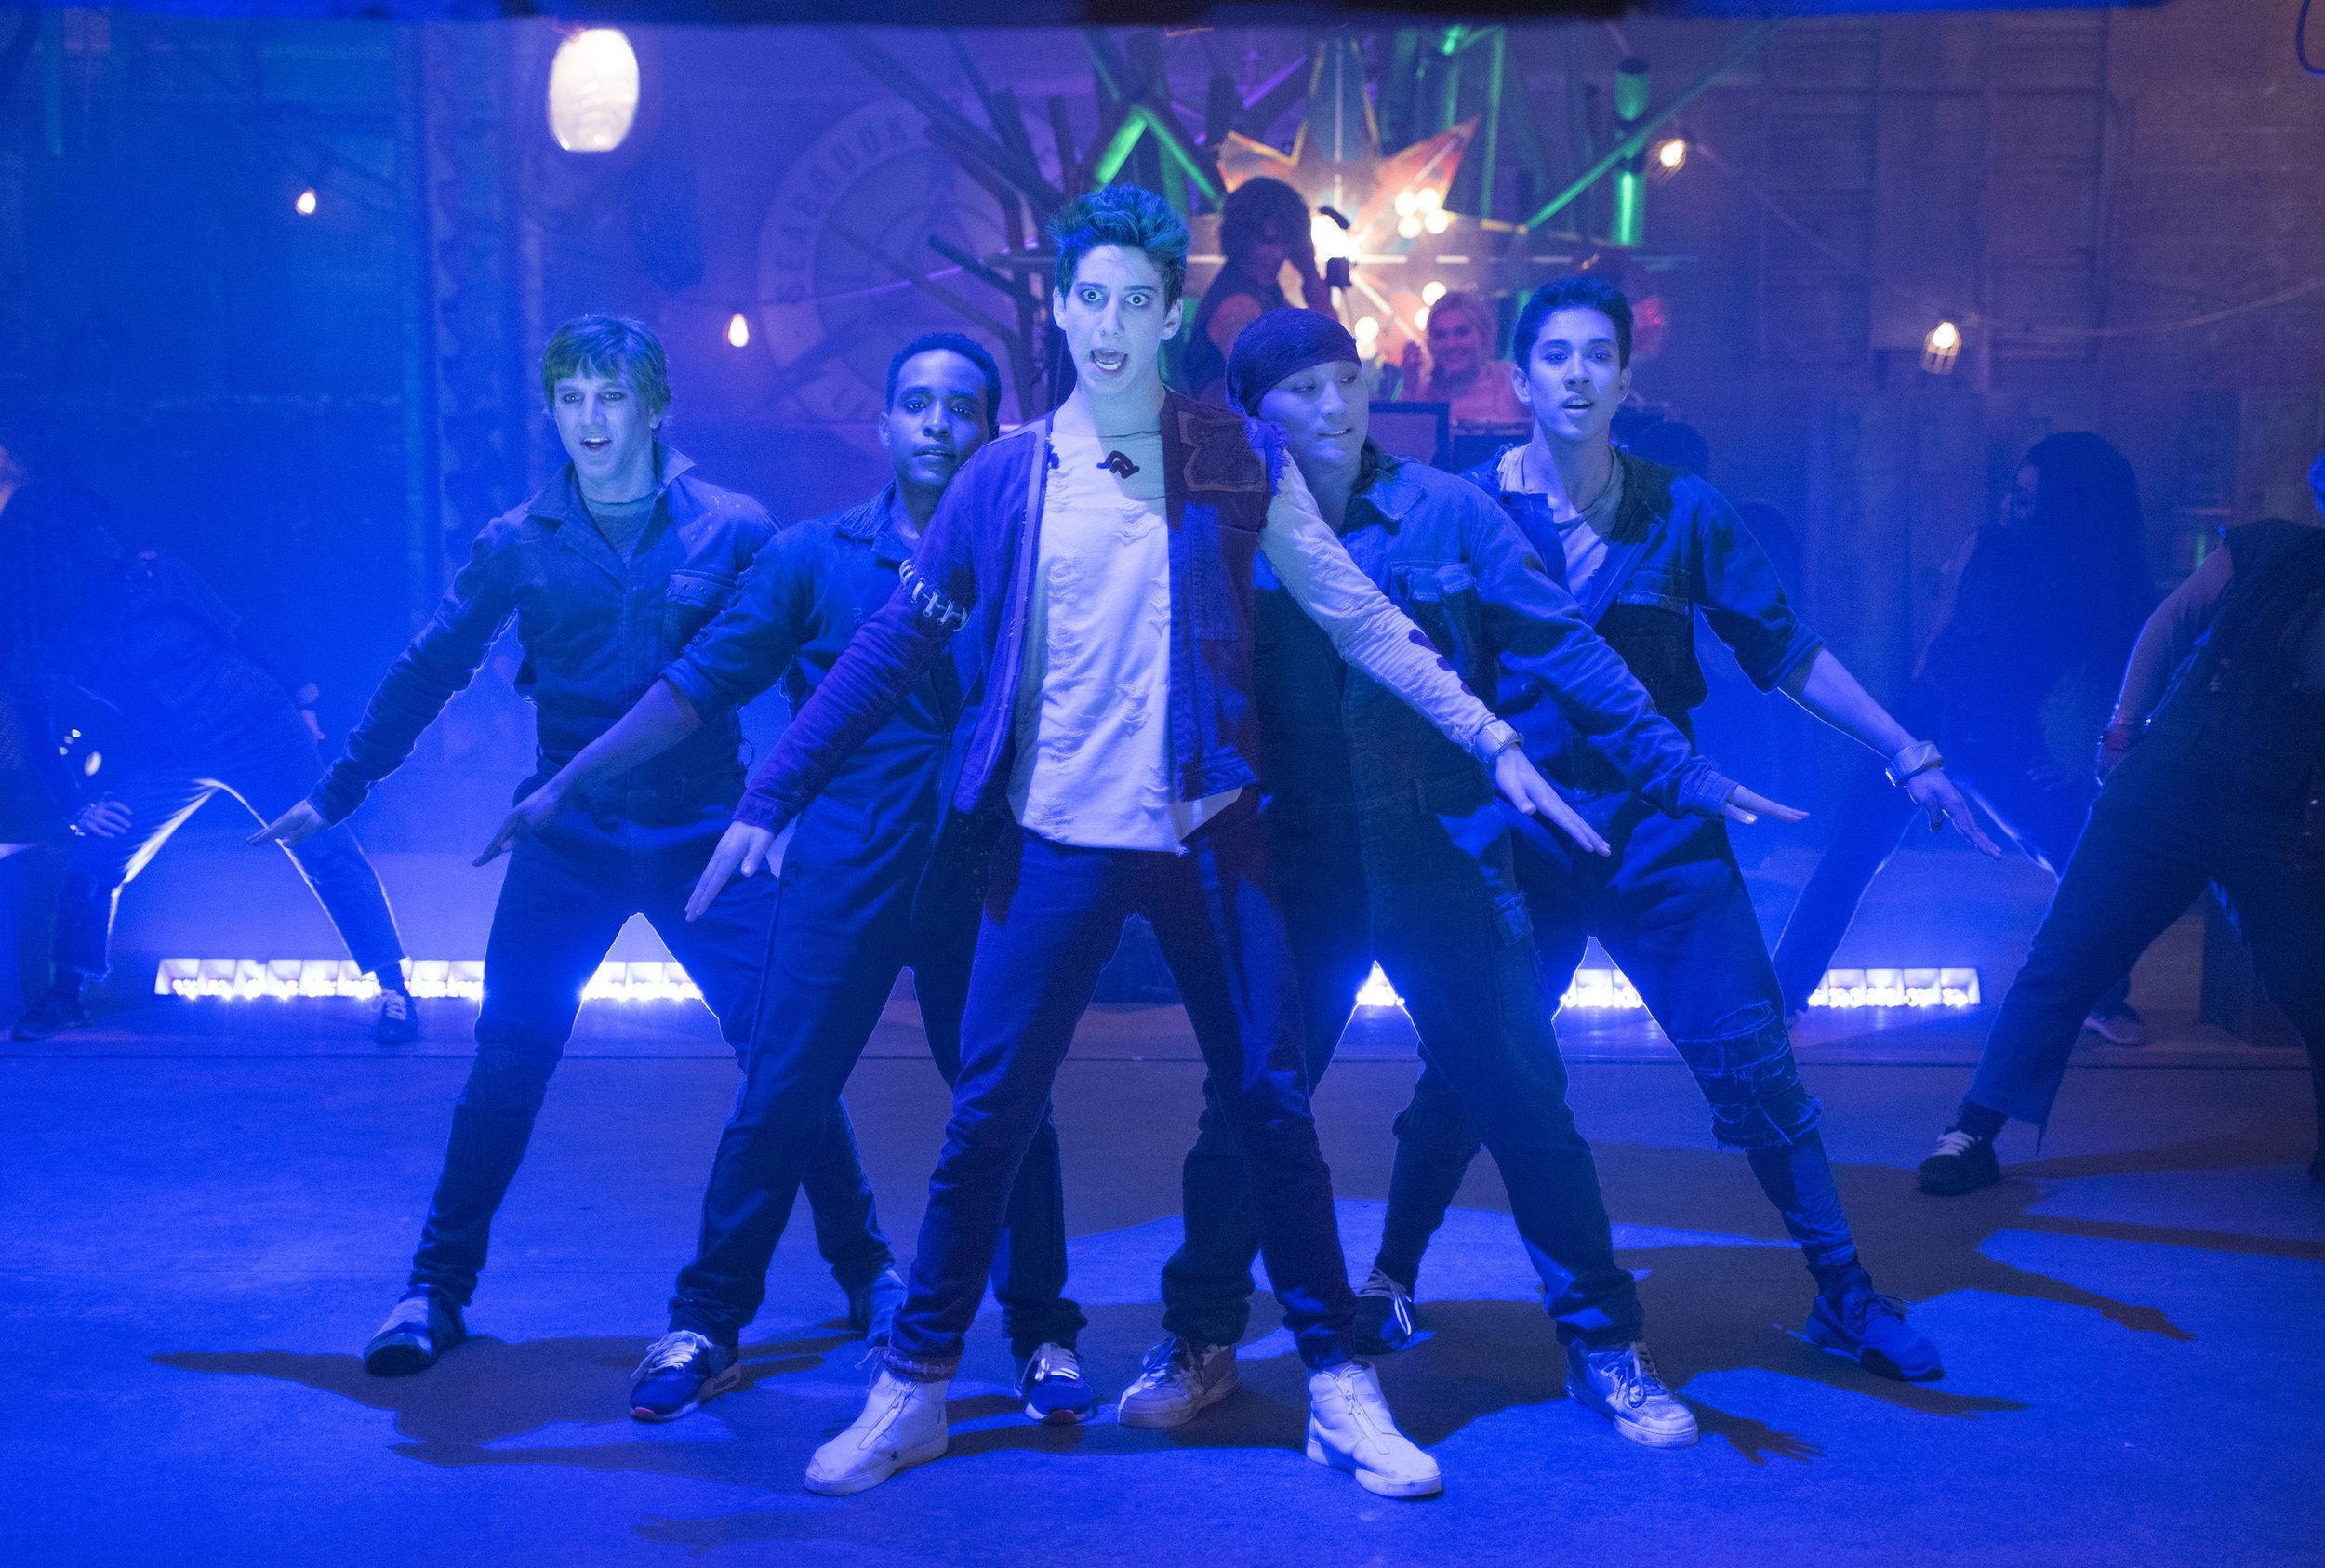 Zed (Milo Manheim) leads the zombie dancers in BAMM in the ruined energy plant.